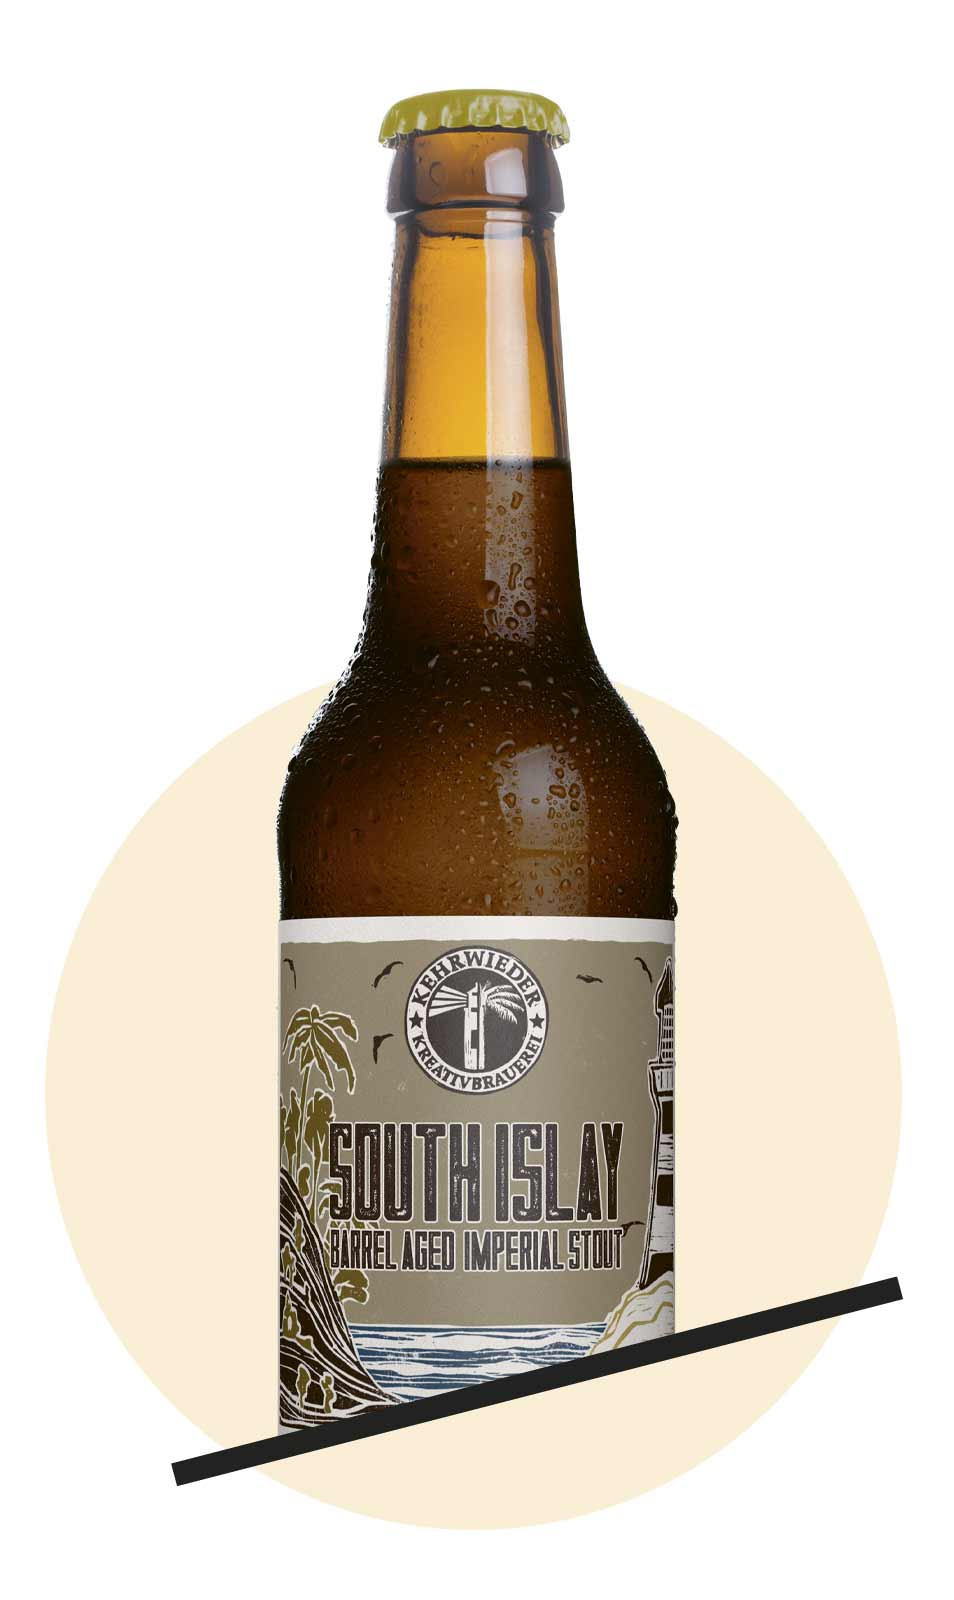 Kehrwieder South Islay Barrel Aged Imperial Stout | Mixology — Magazin für Barkultur